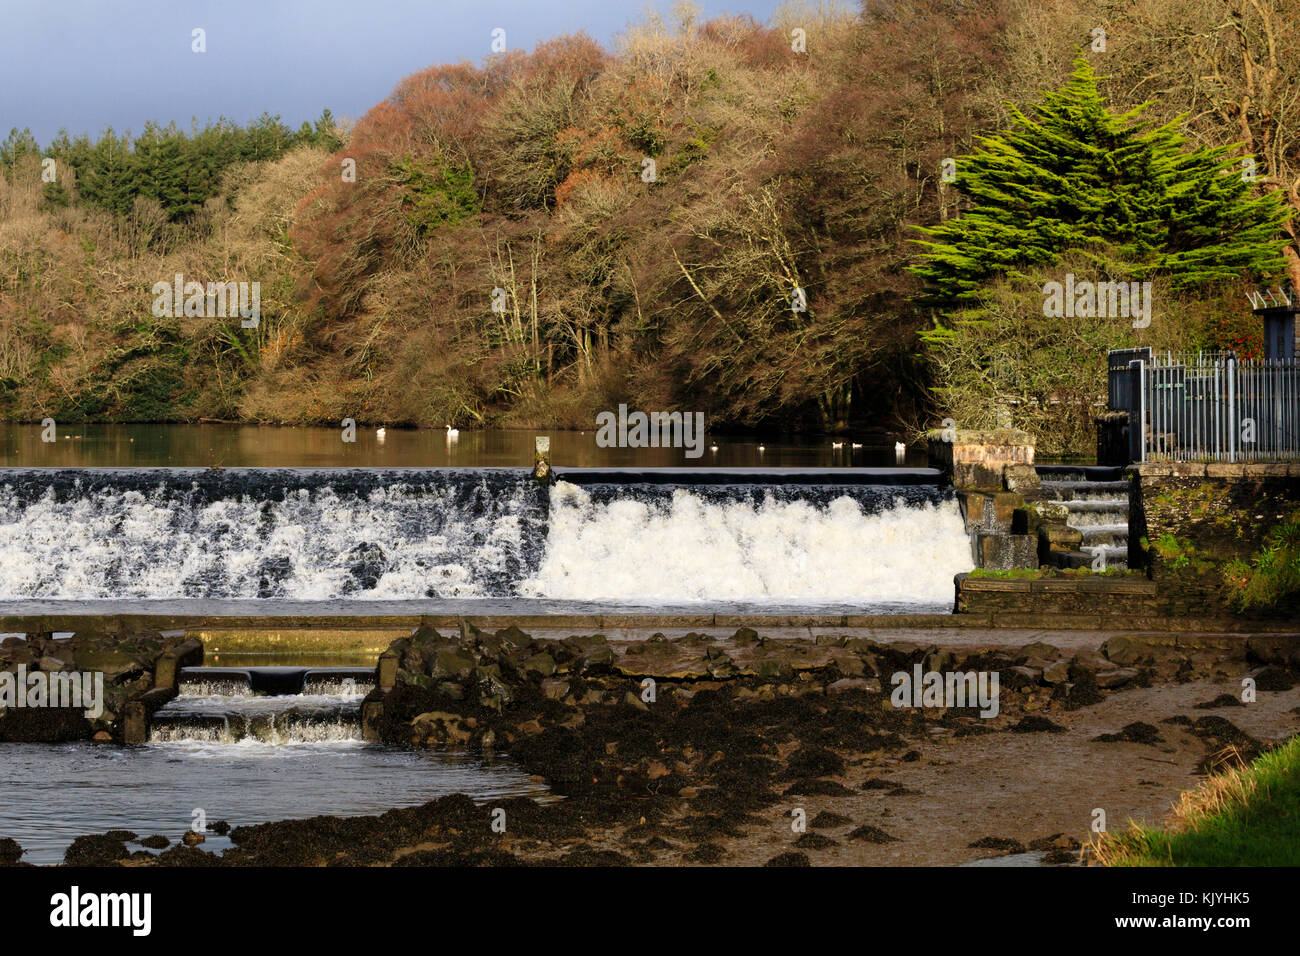 Lopwell Dam on the River Tavy, Devon, UK, in late Autumn sunshine and showing the upper and lower fish ladders Stock Photo